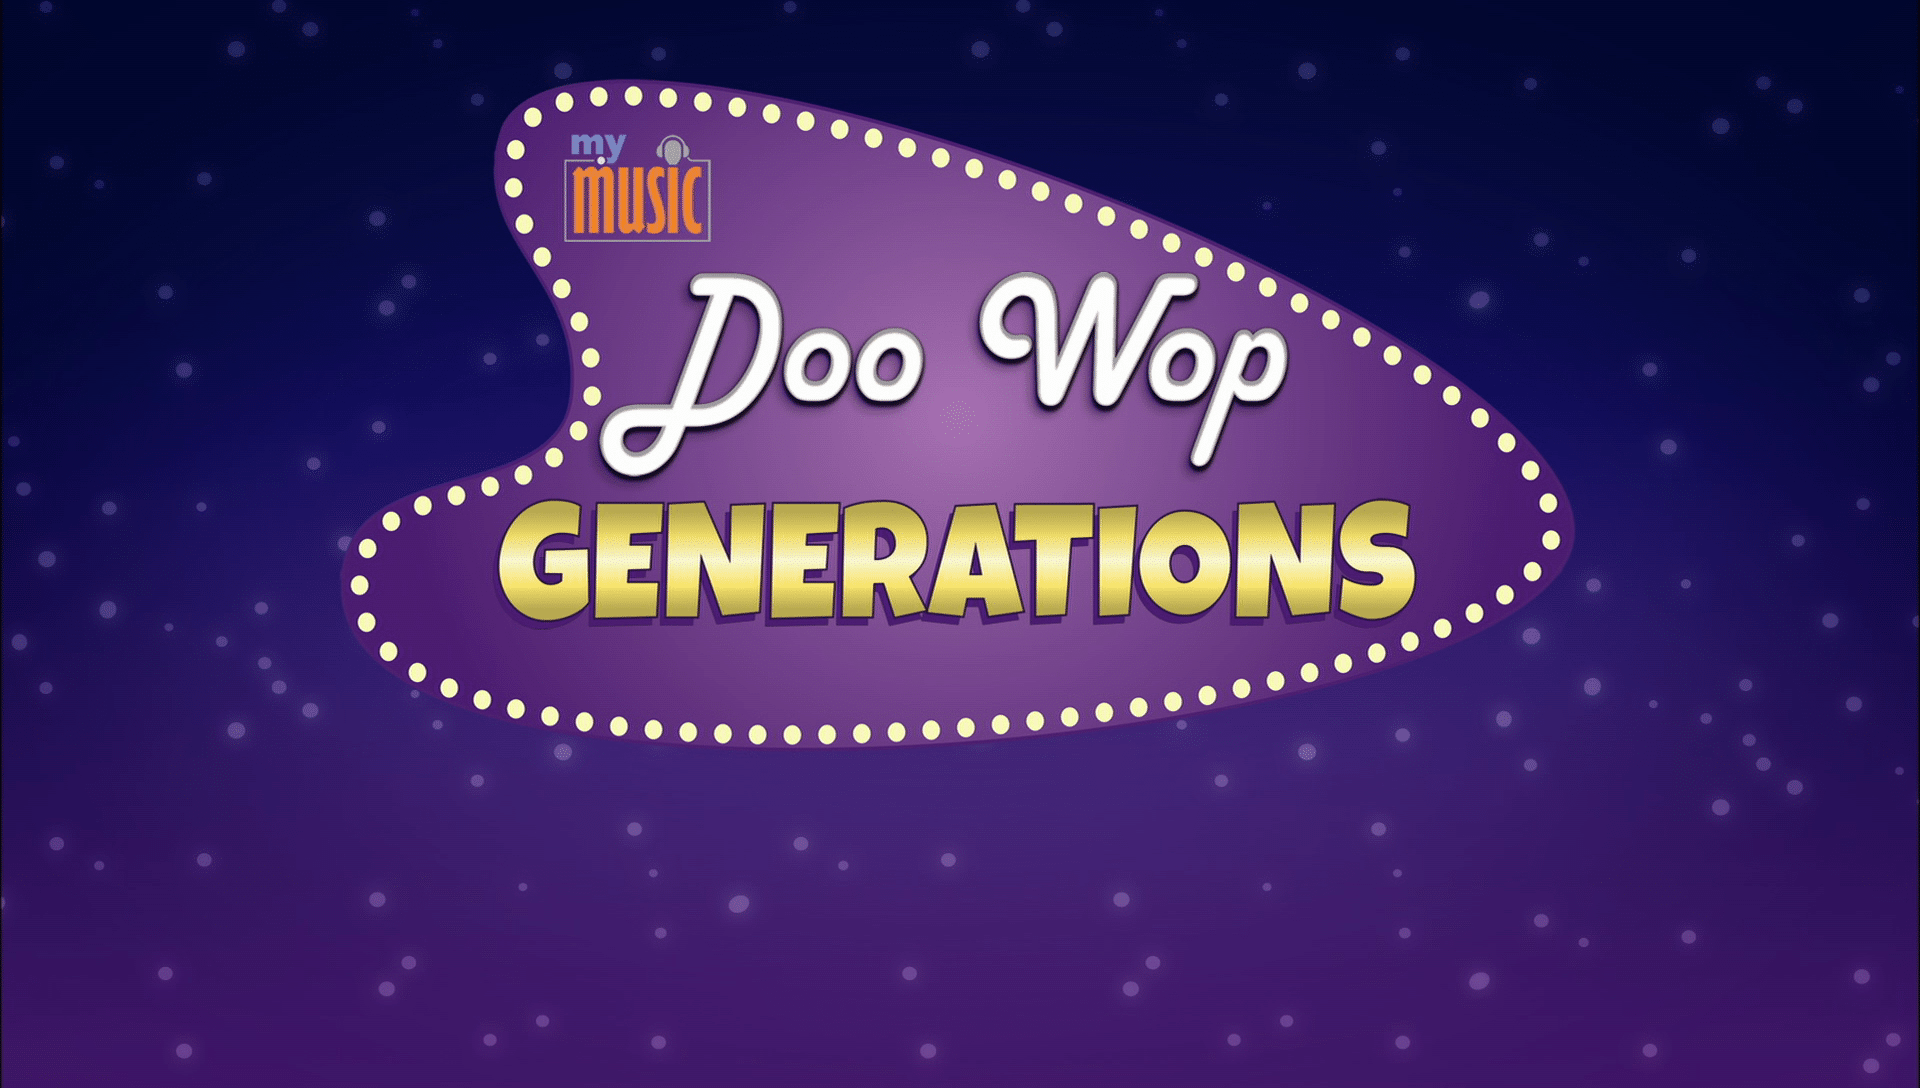 doo wop generations my music connecticut public television. Black Bedroom Furniture Sets. Home Design Ideas